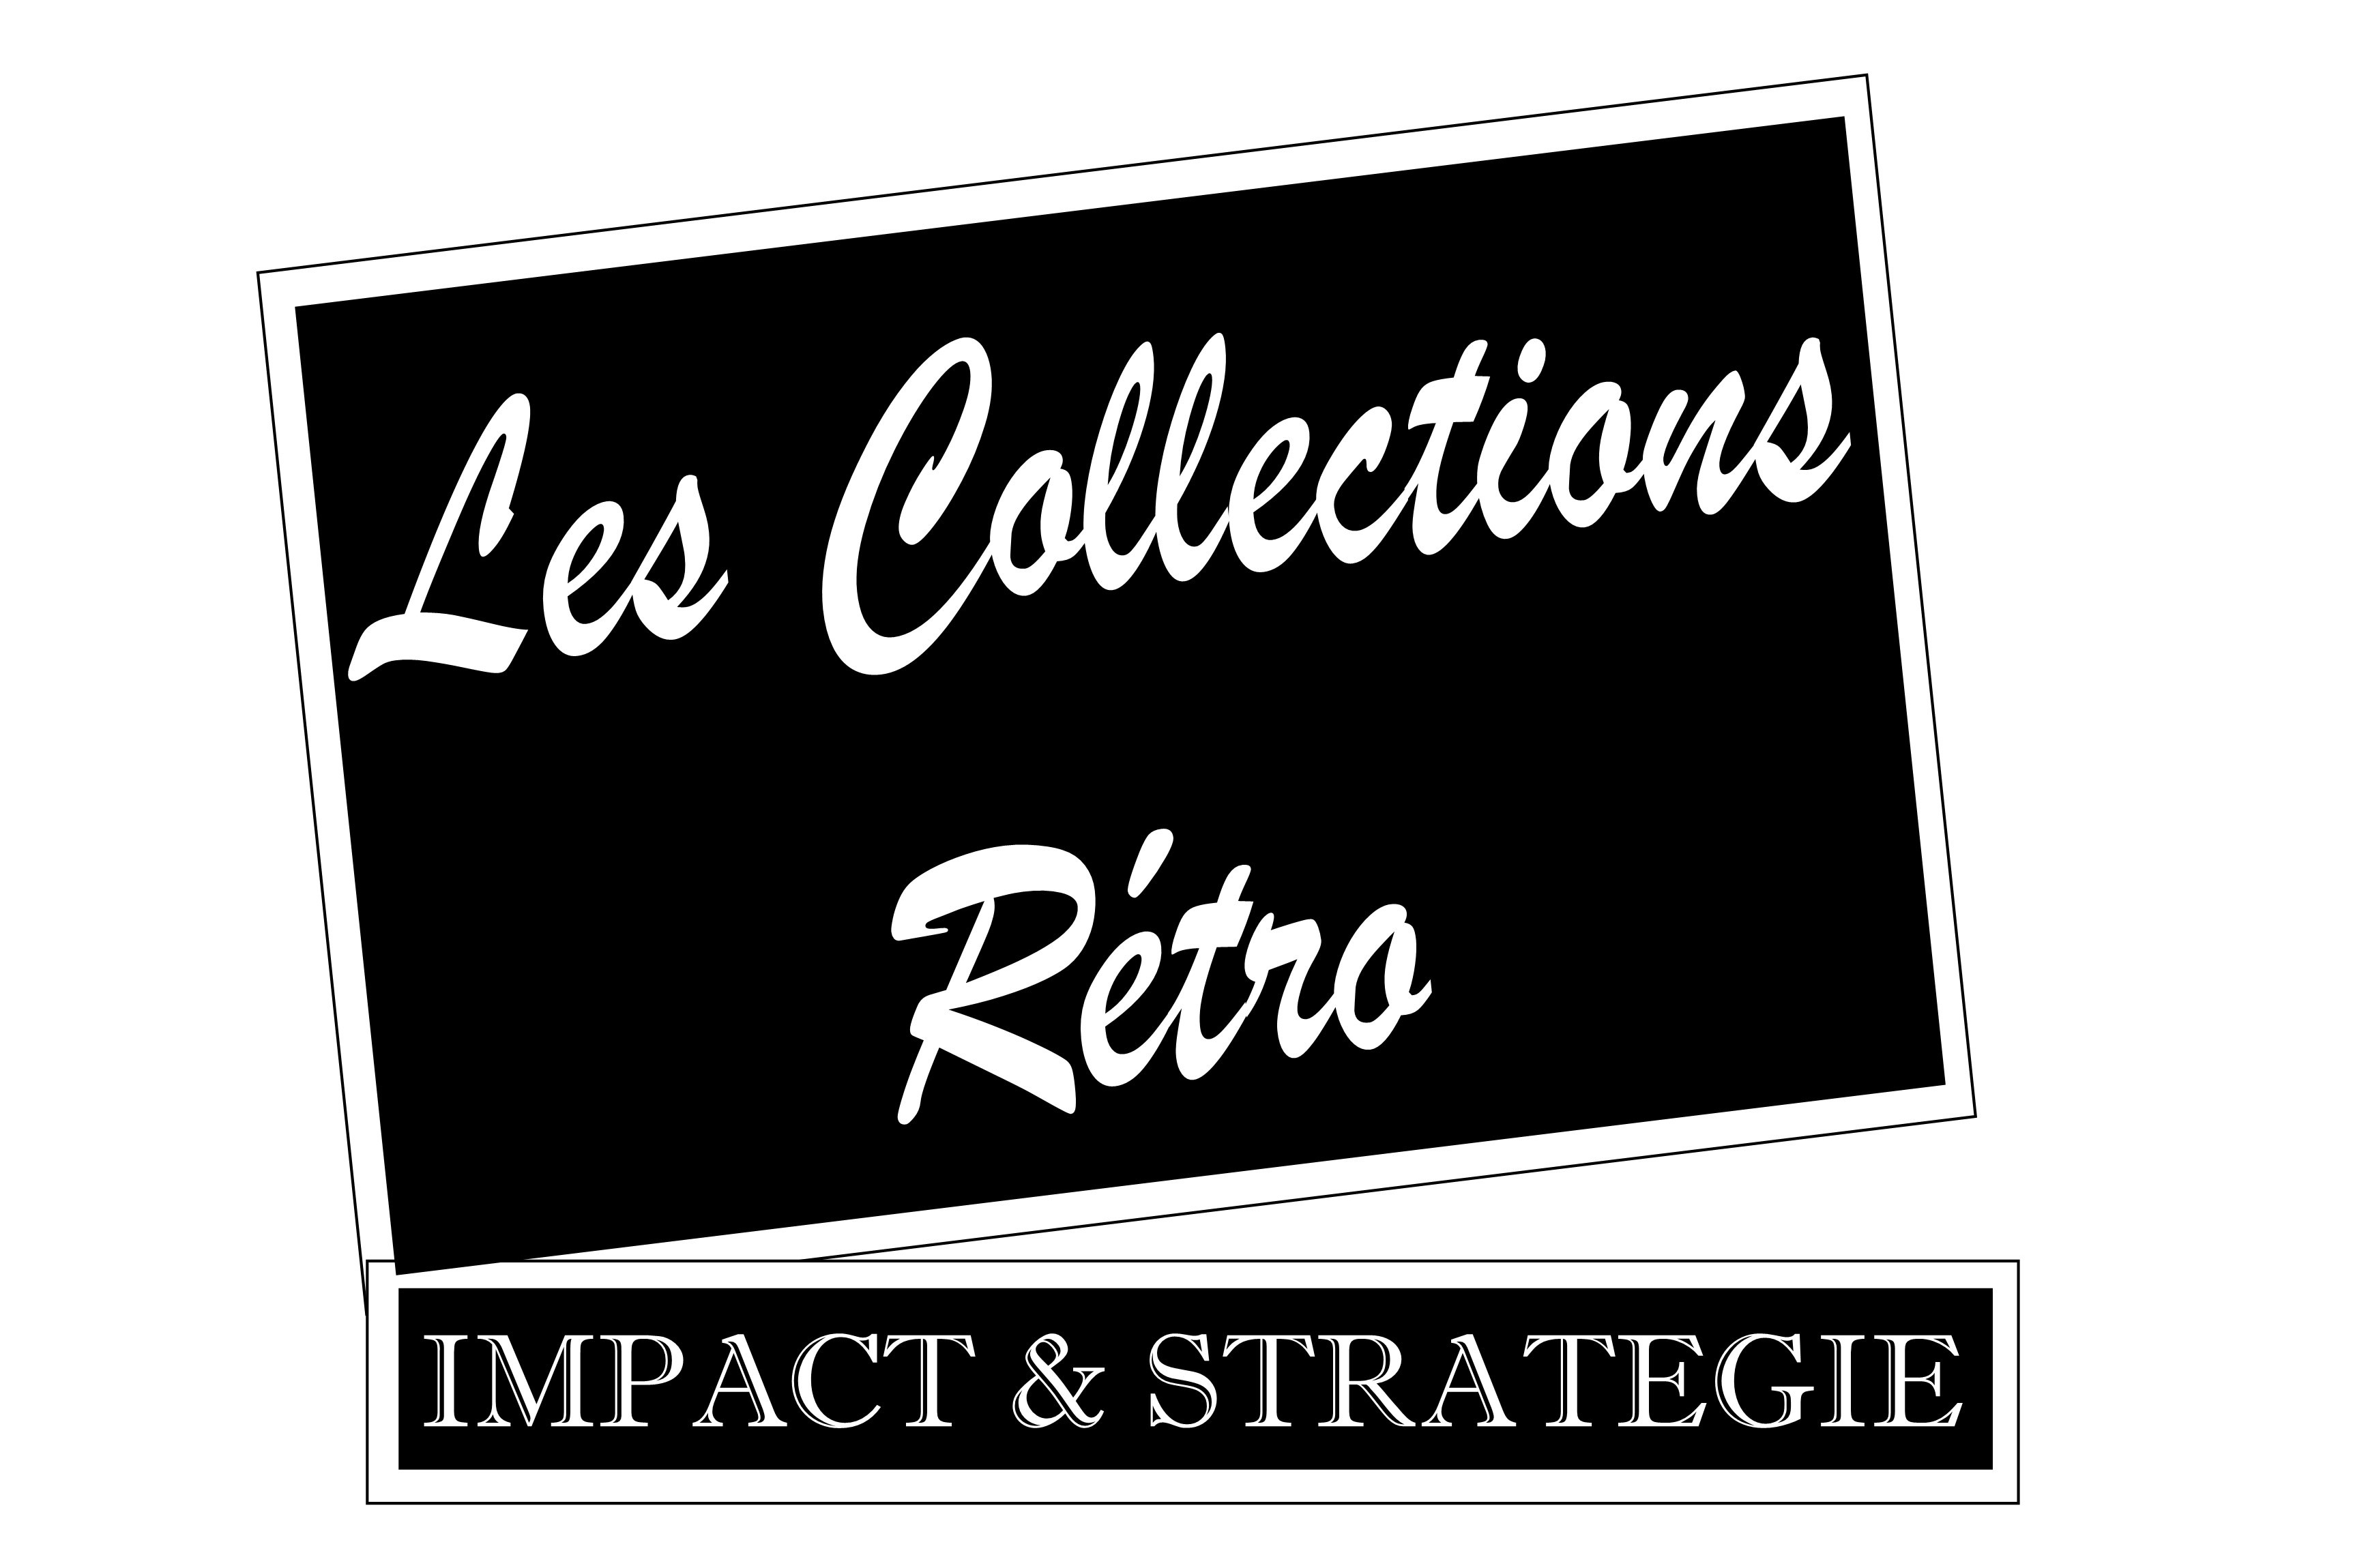 LES COLLECTIONS RETRO